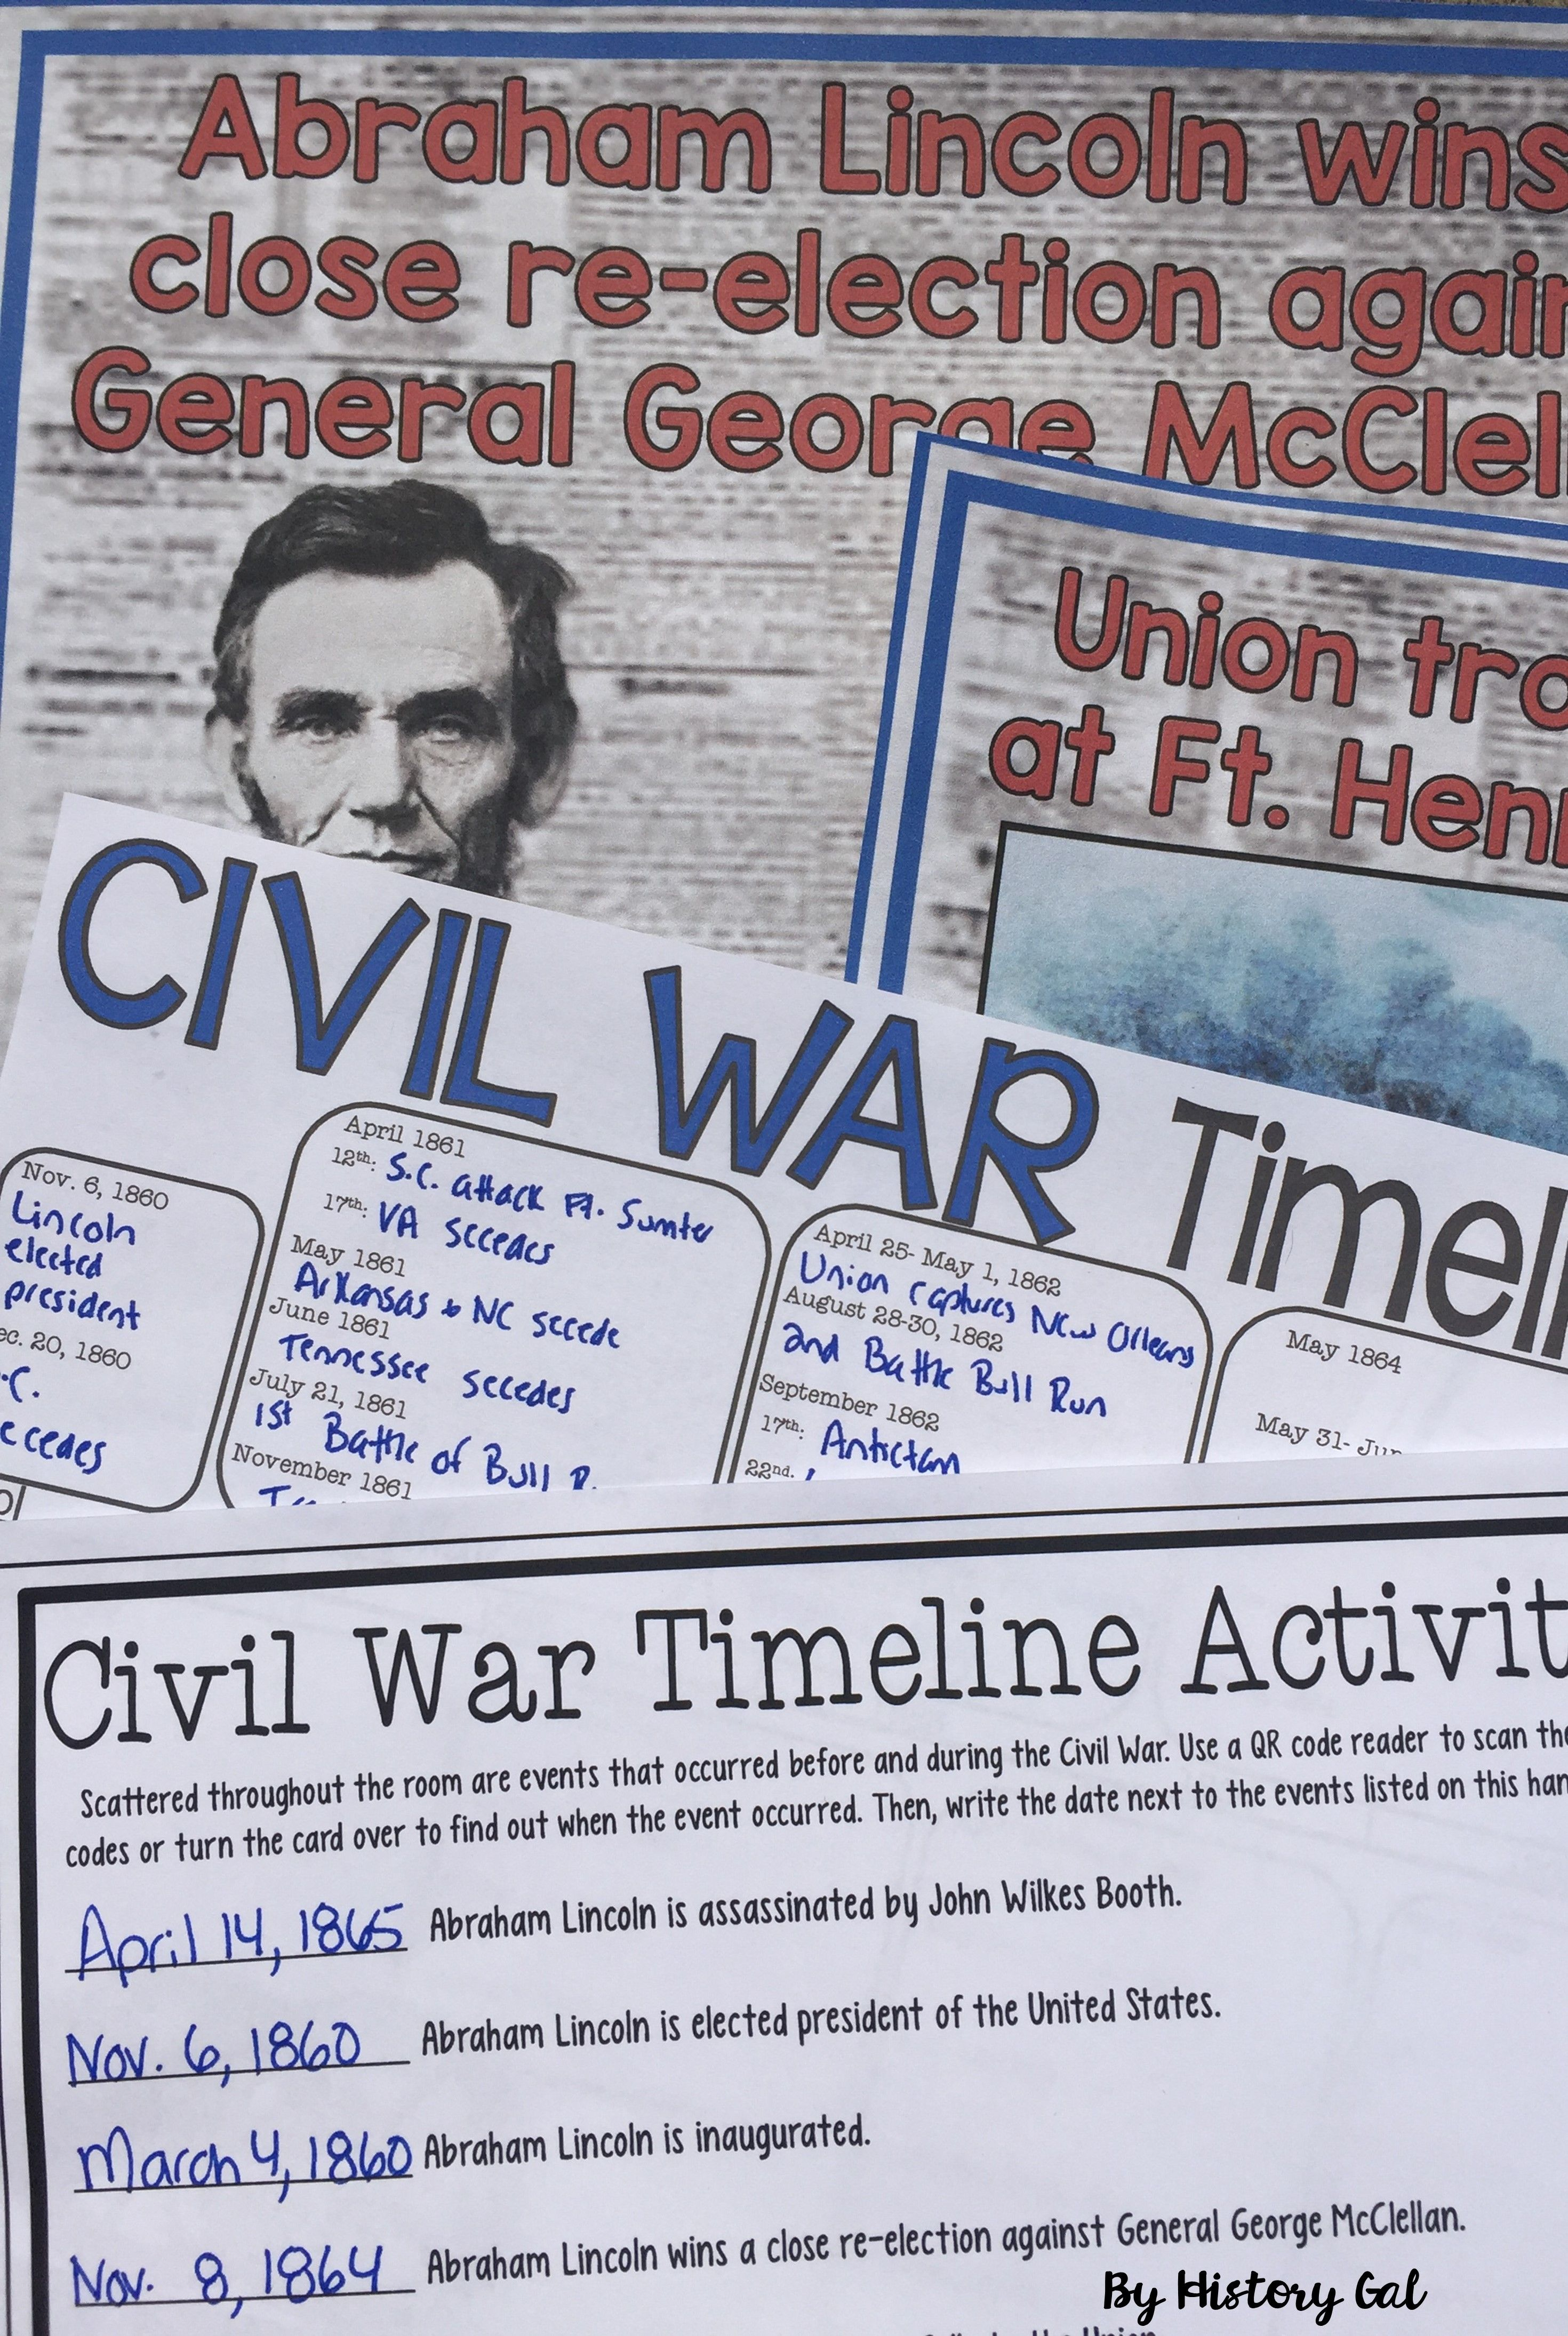 Civil War Timeline Activity With And Without Qr Codes